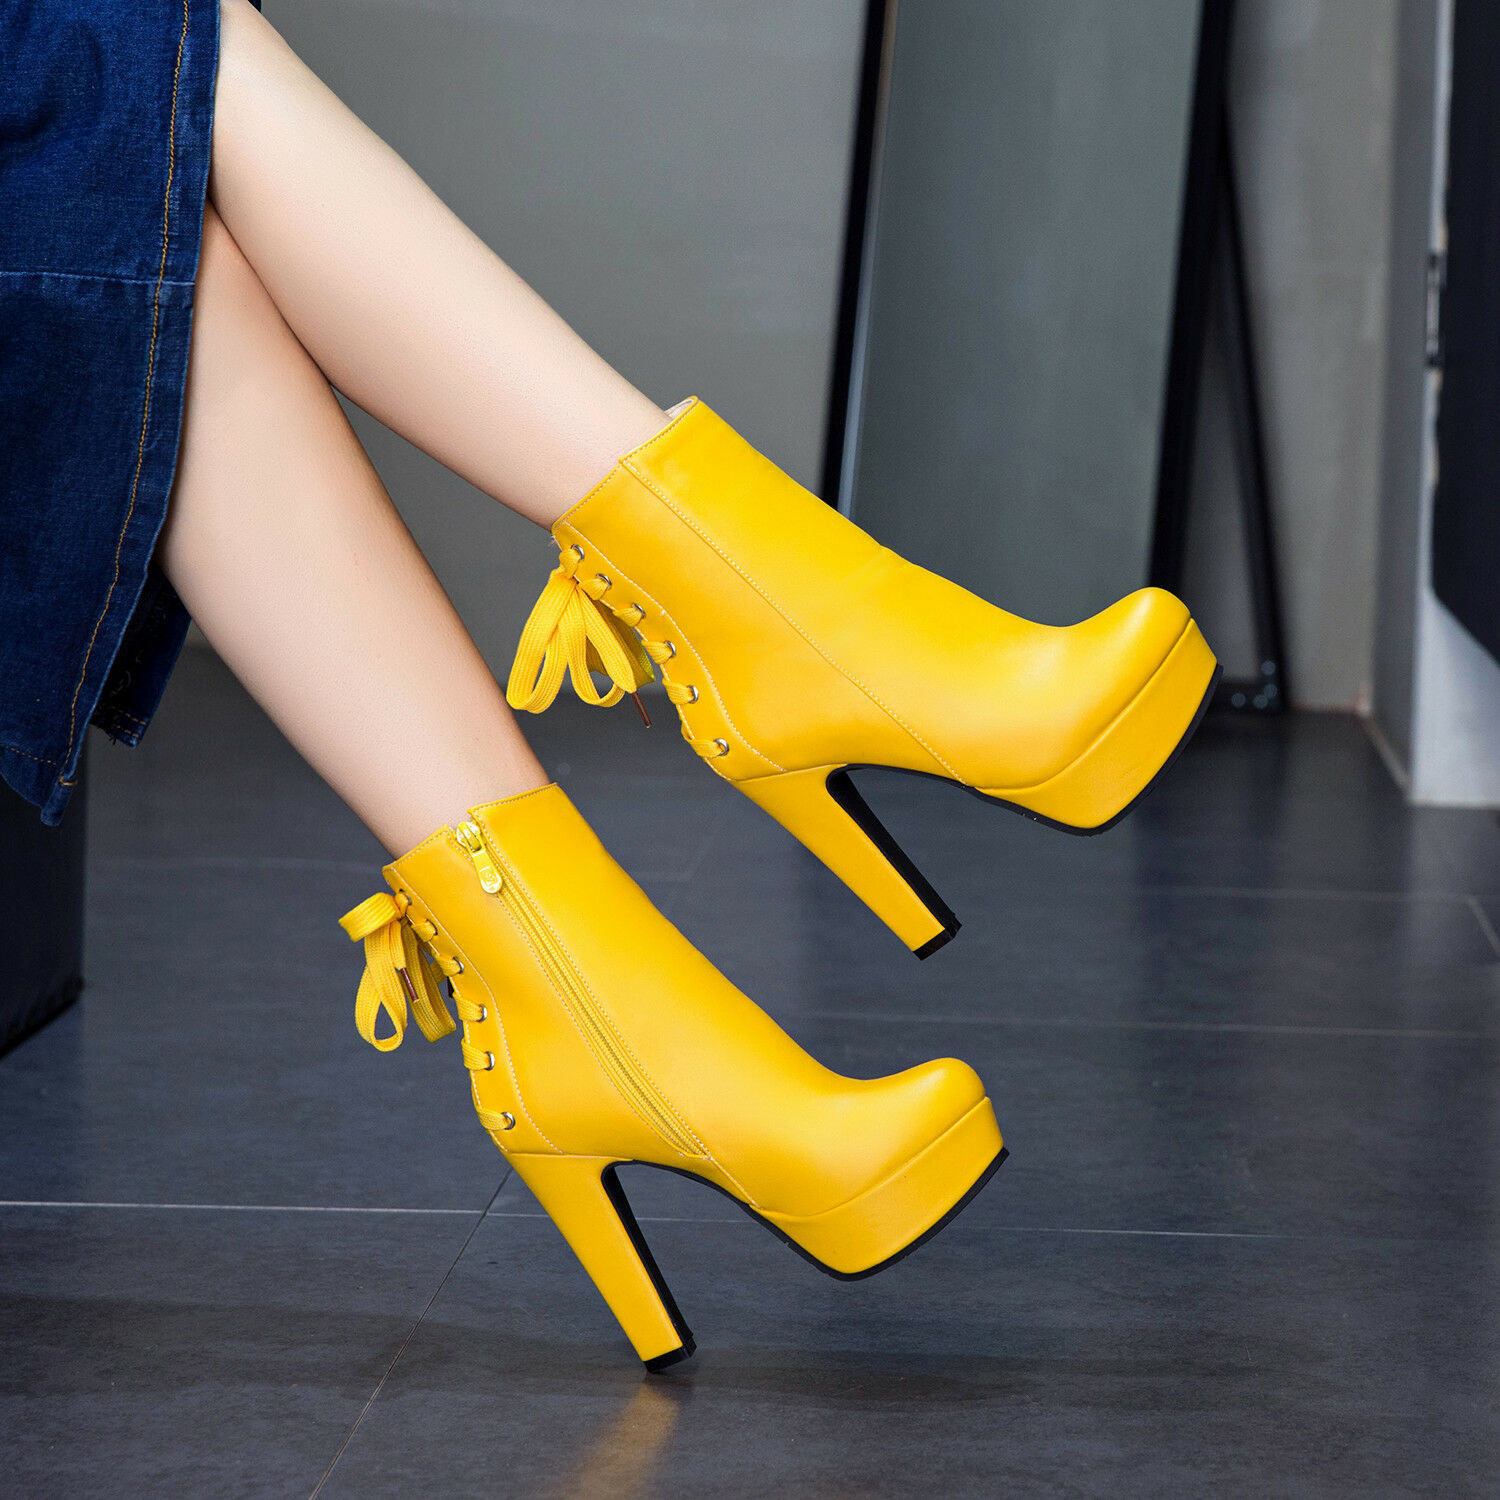 Women Ankle Boots Platform High Heels Lace-up Round Toe Leather Fashion shoes